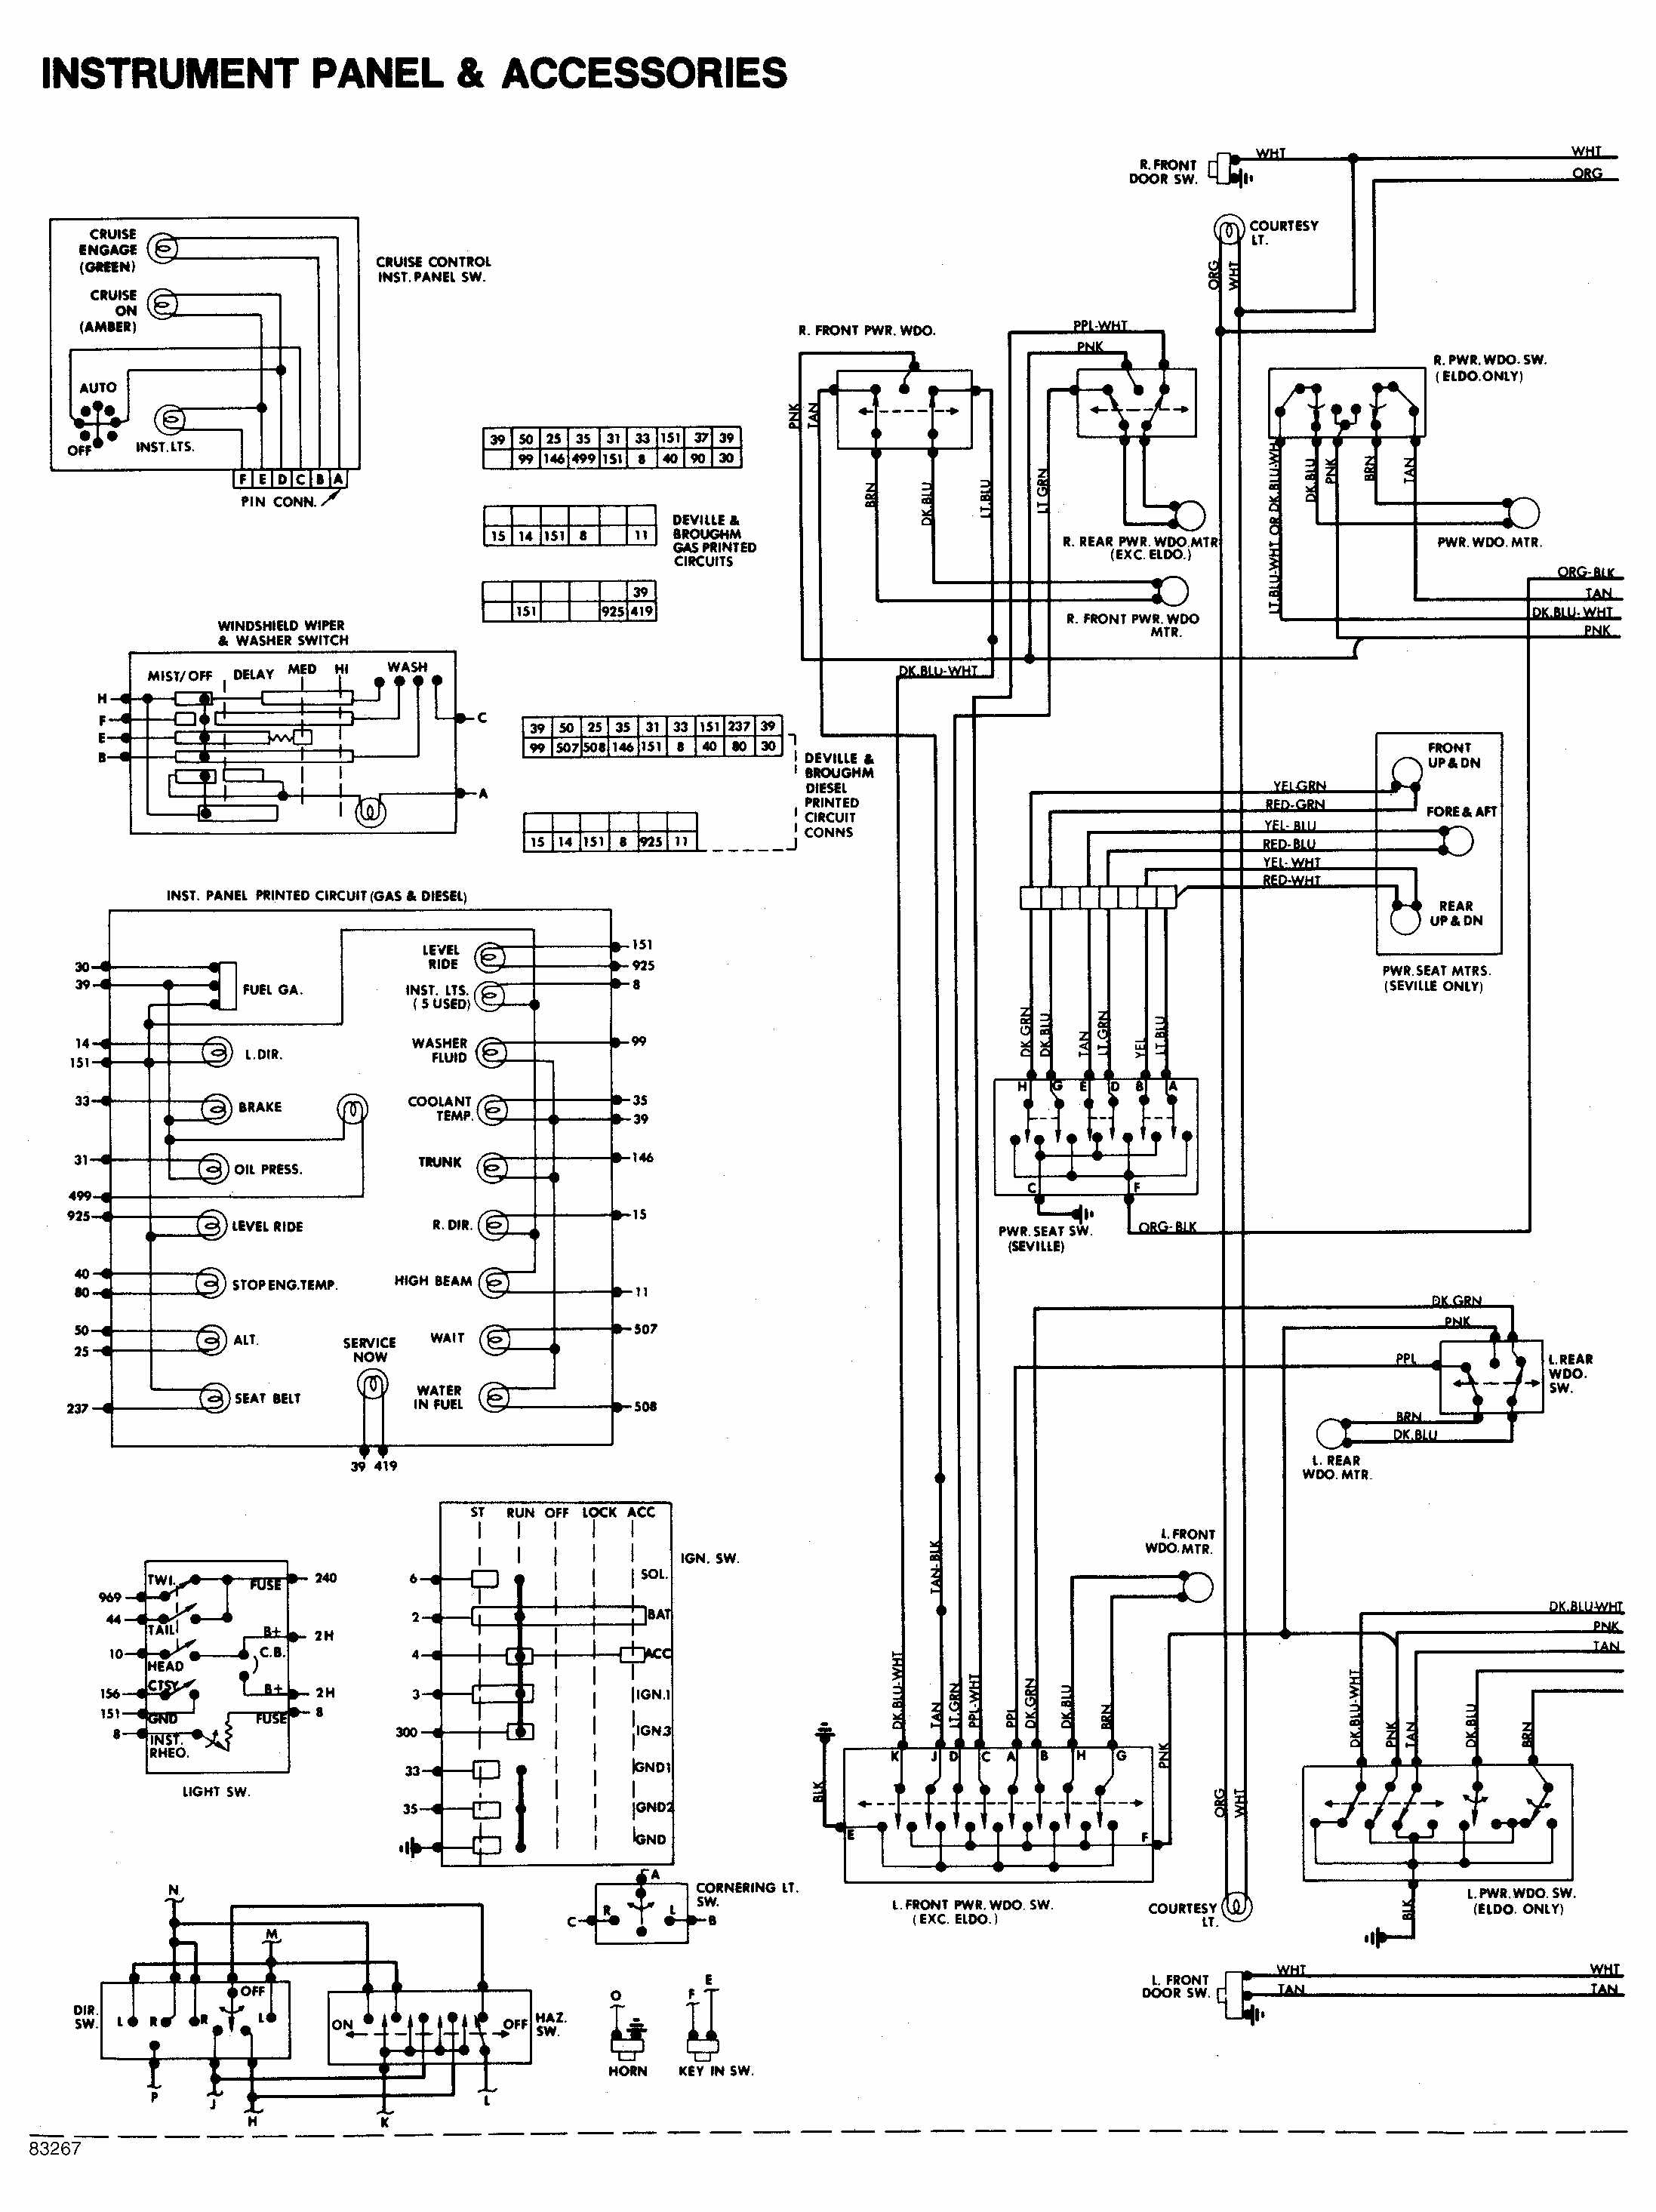 Power Seat Wiring Diagram Vw Engine Control Acura 1997 Cadillac Blog Rh 45 Fuerstliche Weine De